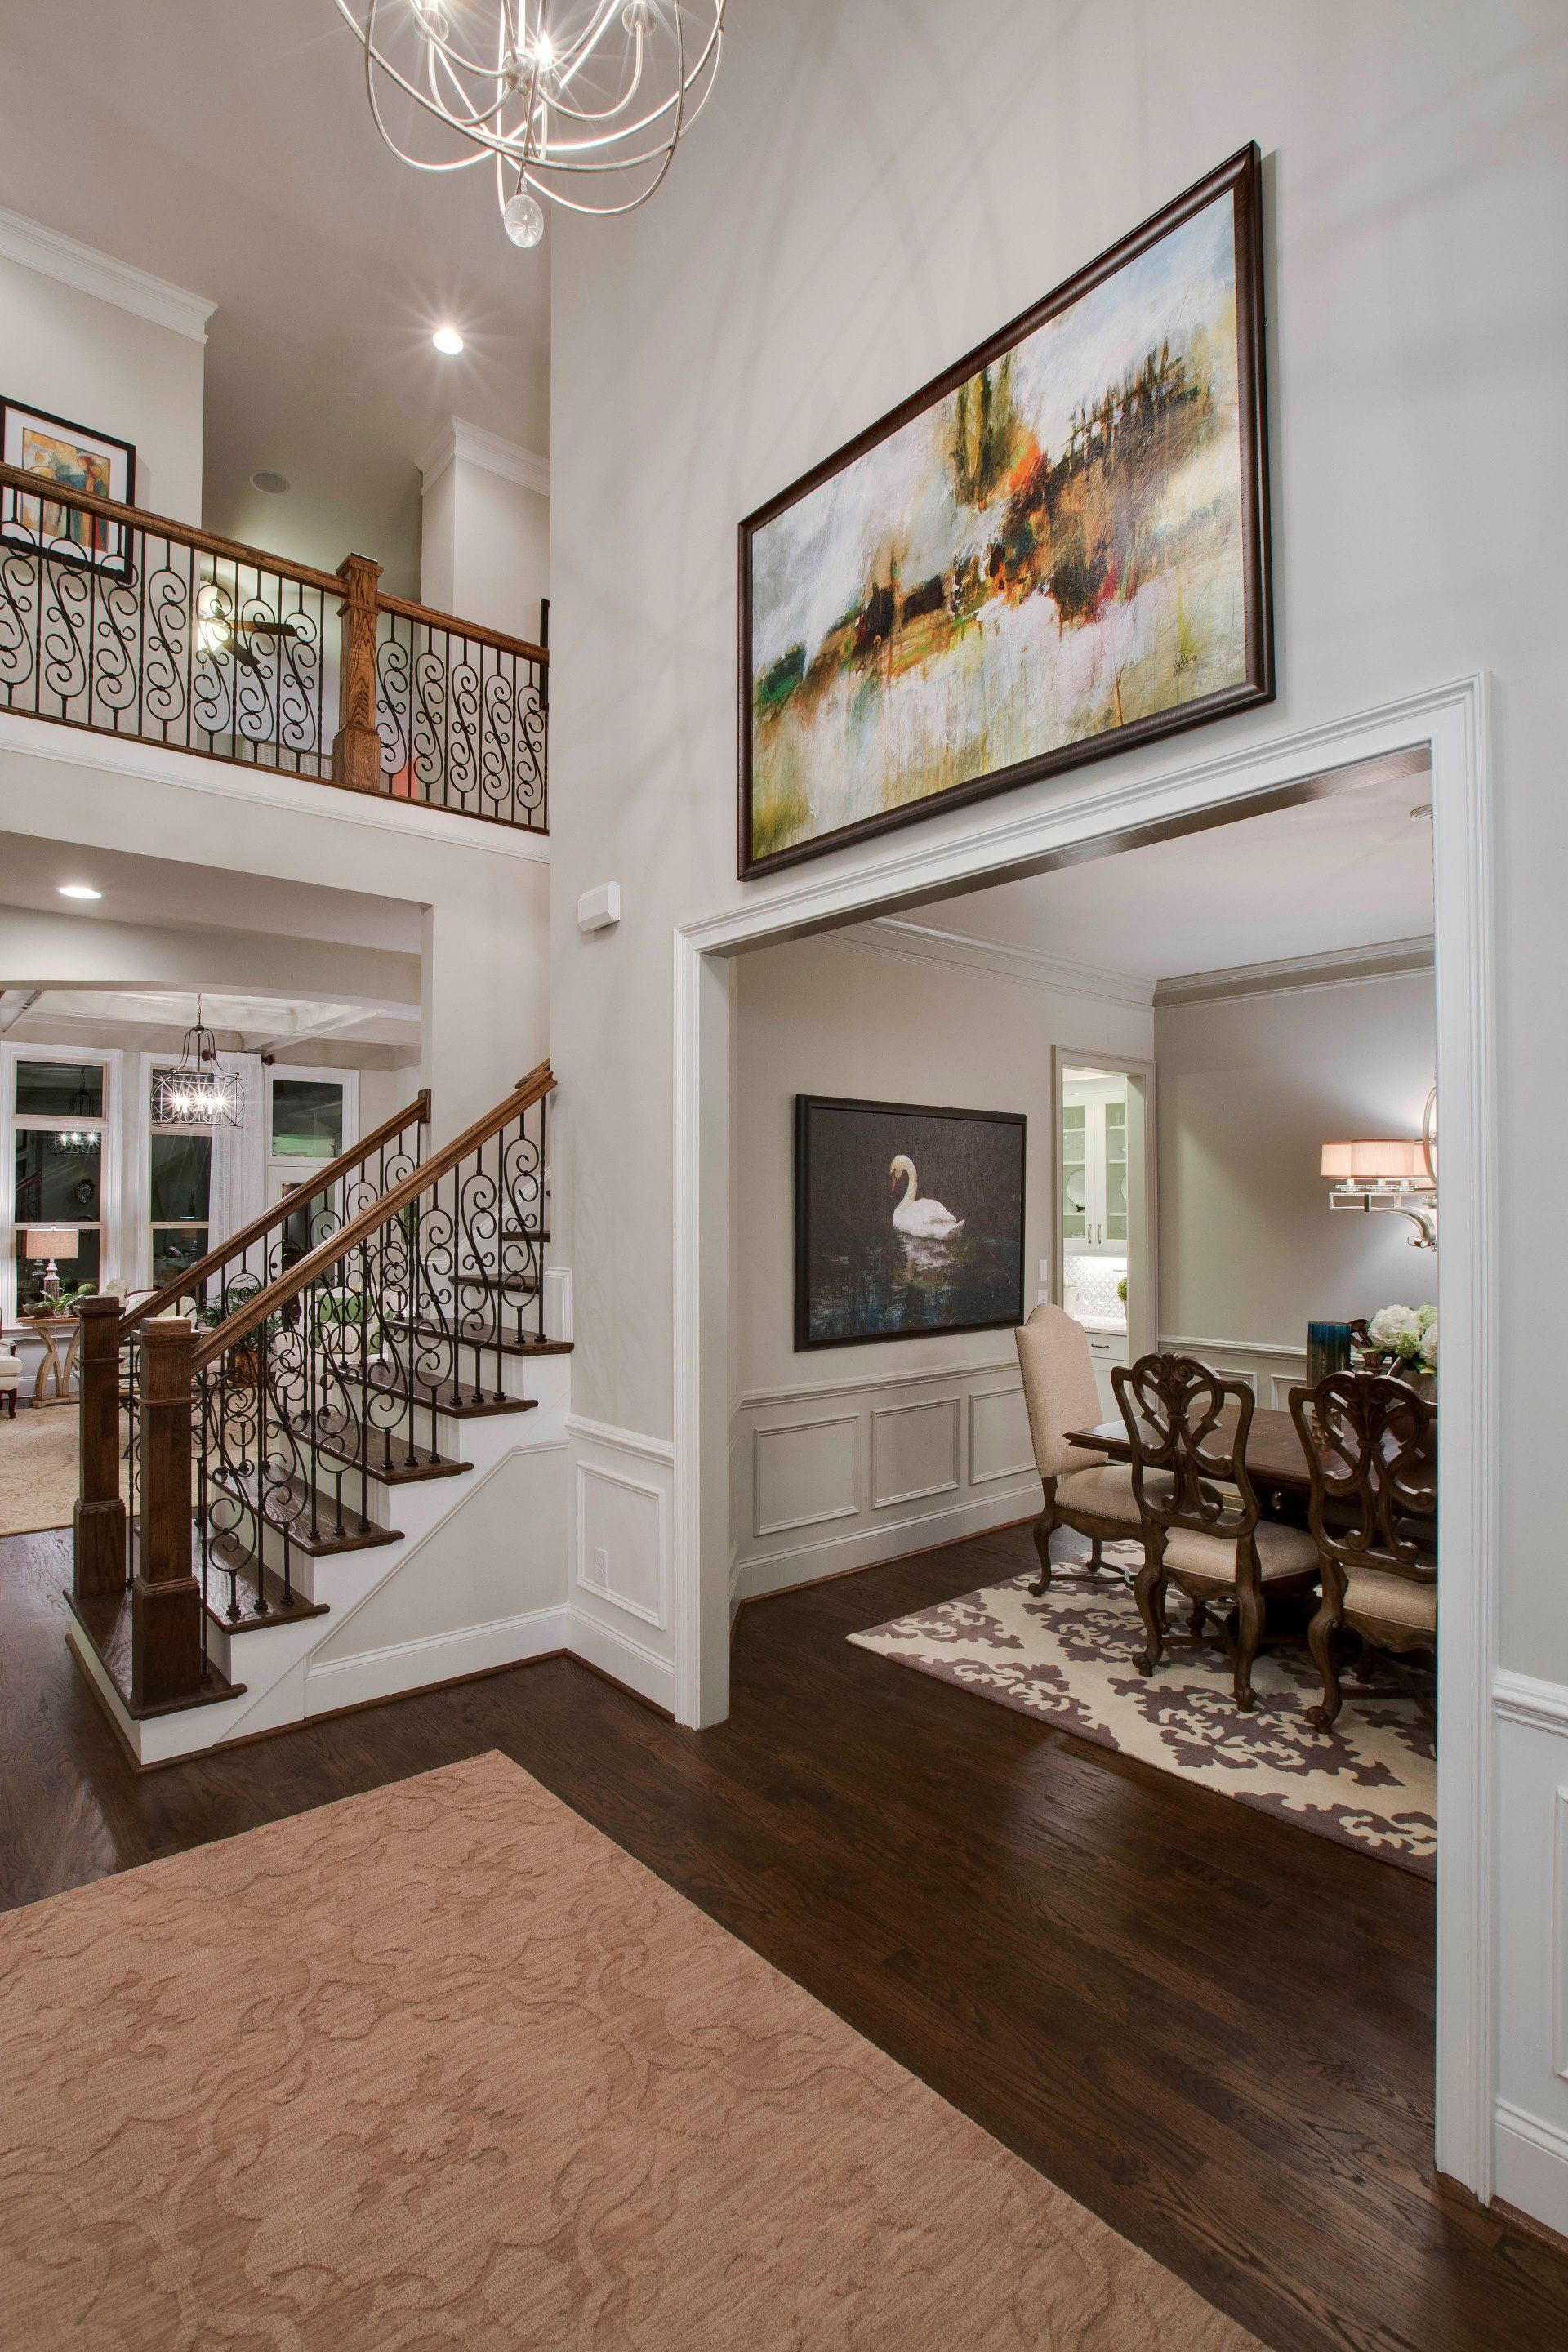 Two Story Foyer Quiz : Two story foyer tratonhomespinteractcontest the reserve